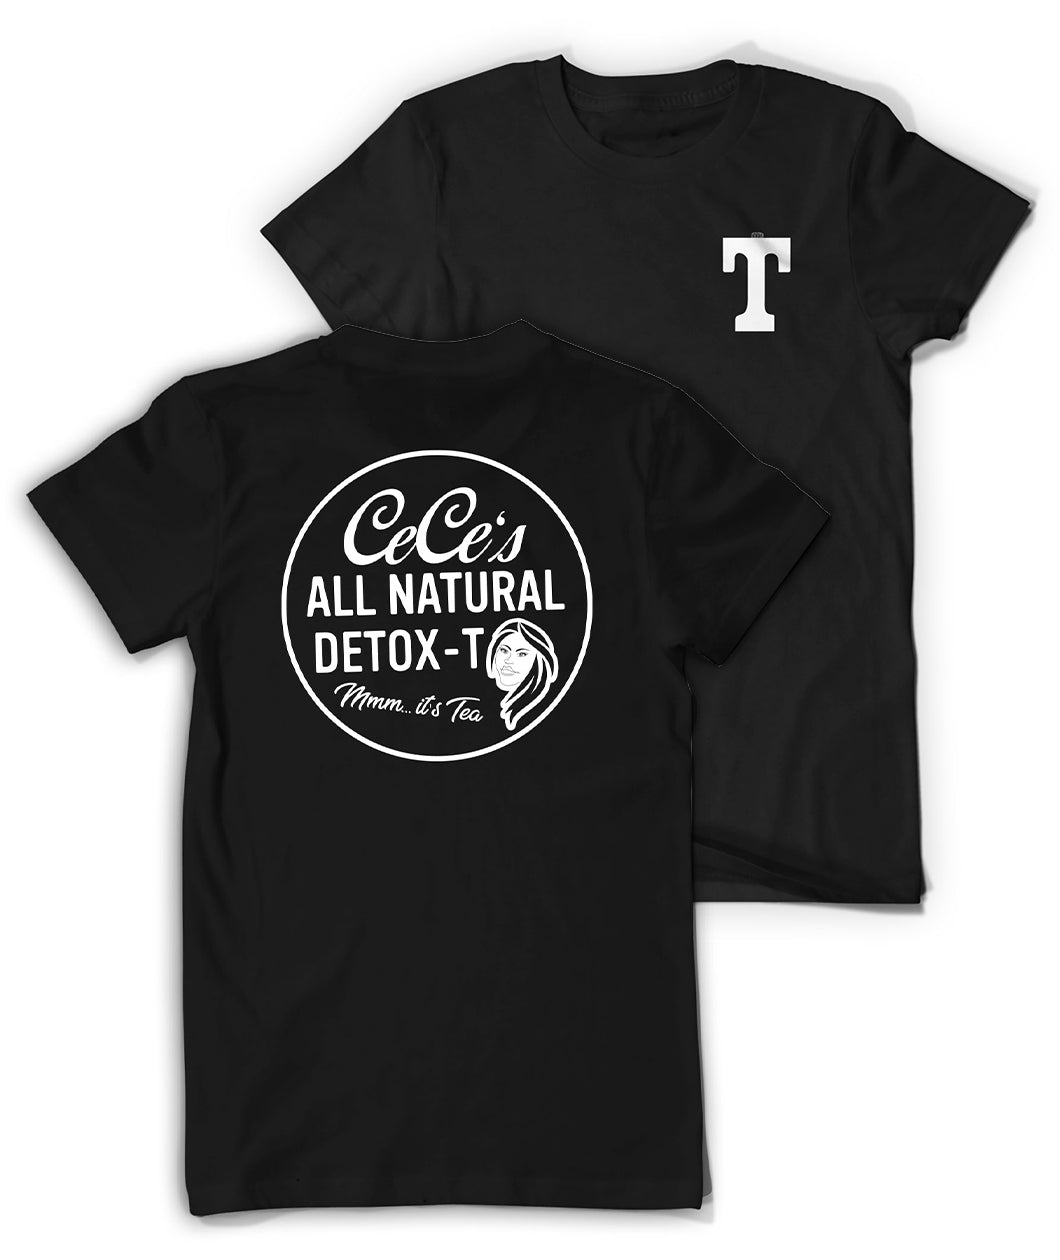 CeCe's All Natural Detox-T (Shirt)